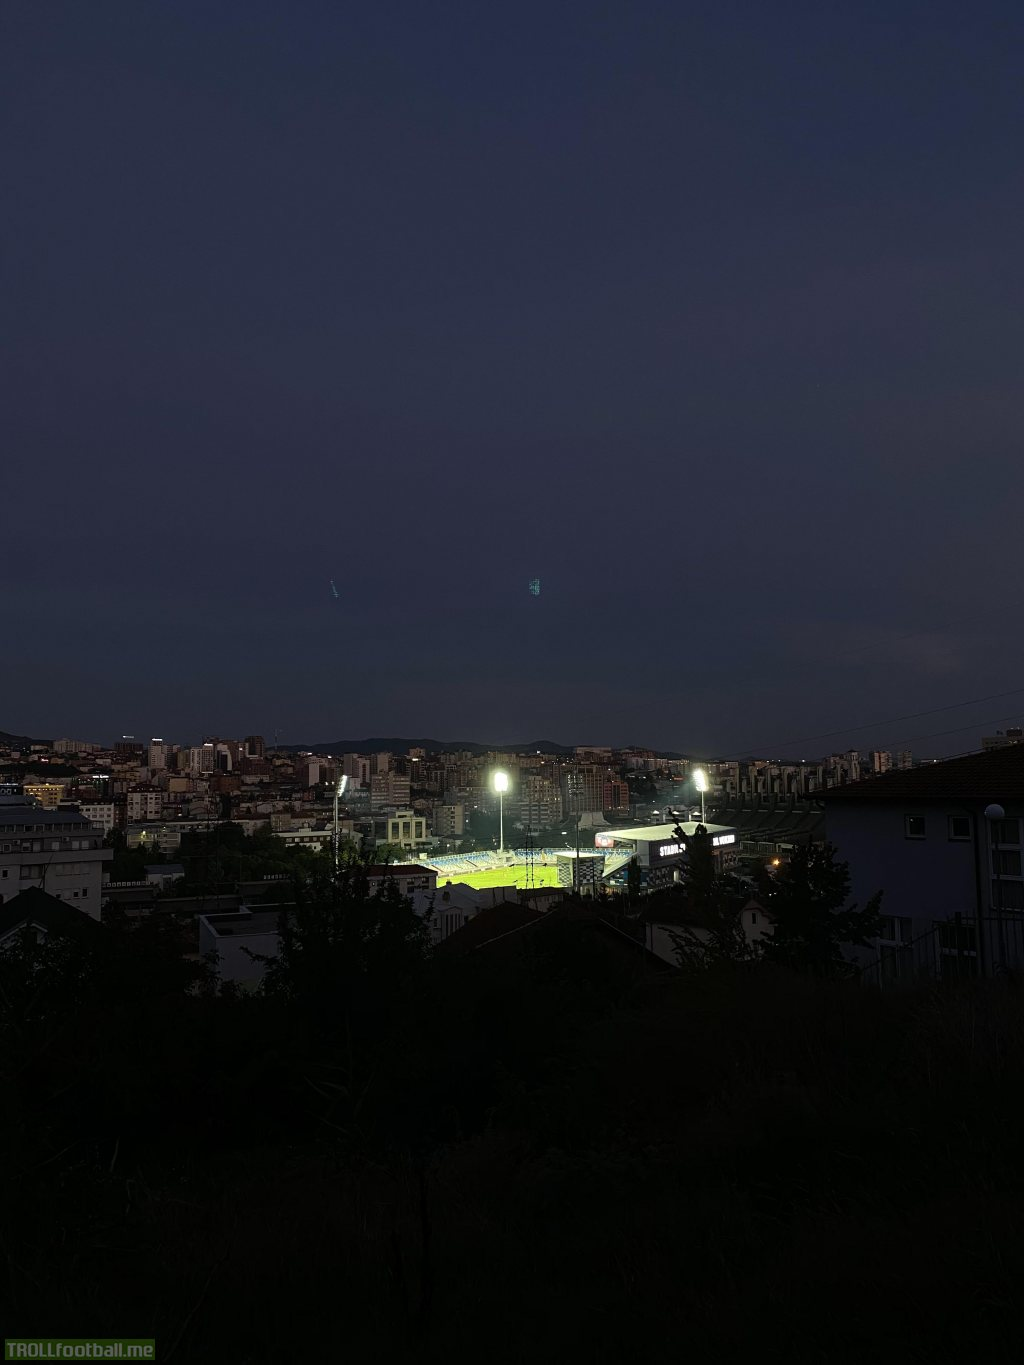 A live [image] of the Fadil Vokrri Stadium from the Europa League qualifier between Gjilani & APOEL Nicosia. Gjilani is the only Kosovar team left in the European competitions as two other teams (Prishtina & Drita) have been disqualified because of players testing positive with Covid-19.